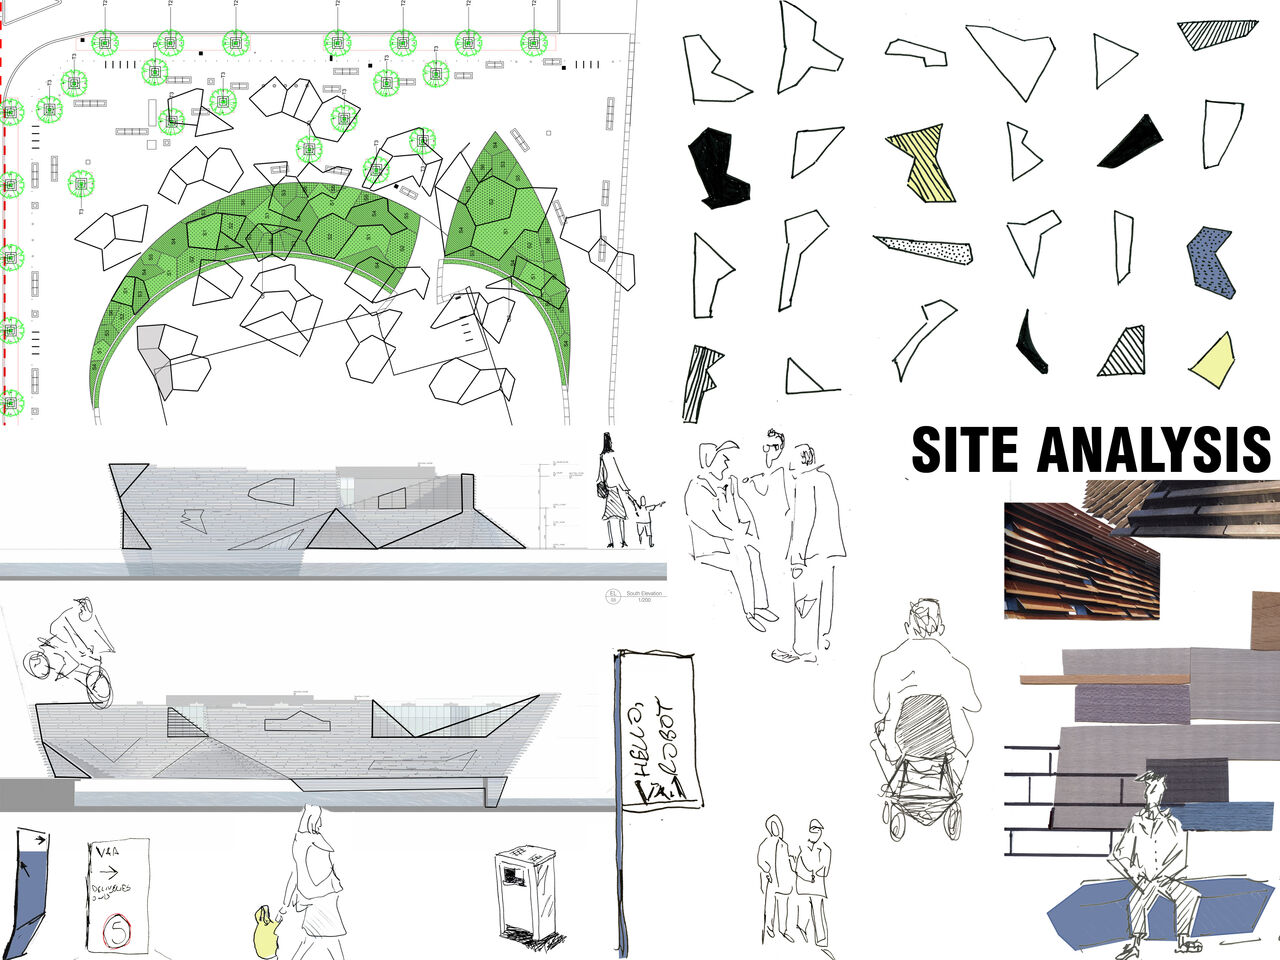 A collection of illustrations and plans of V&A Dundee and its surroundings with pedestrian routes and trails mapped out.